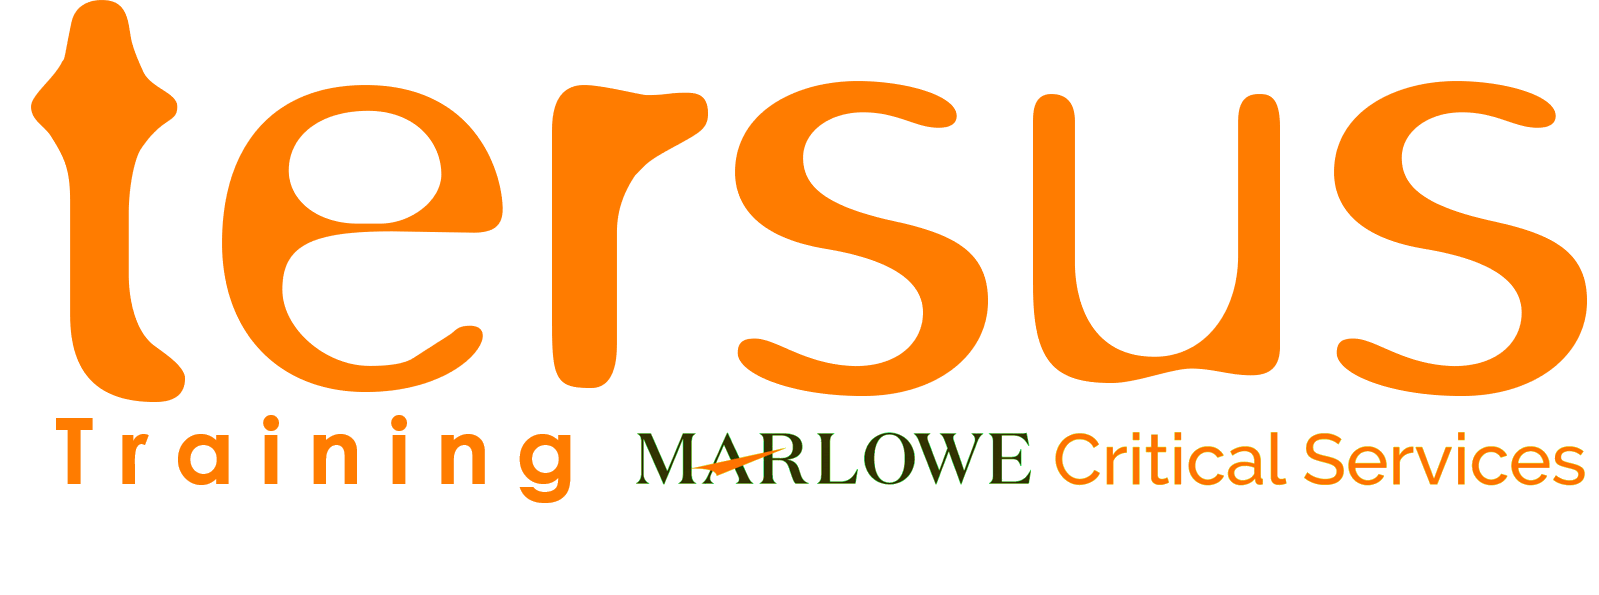 Tersus Training Services Logo